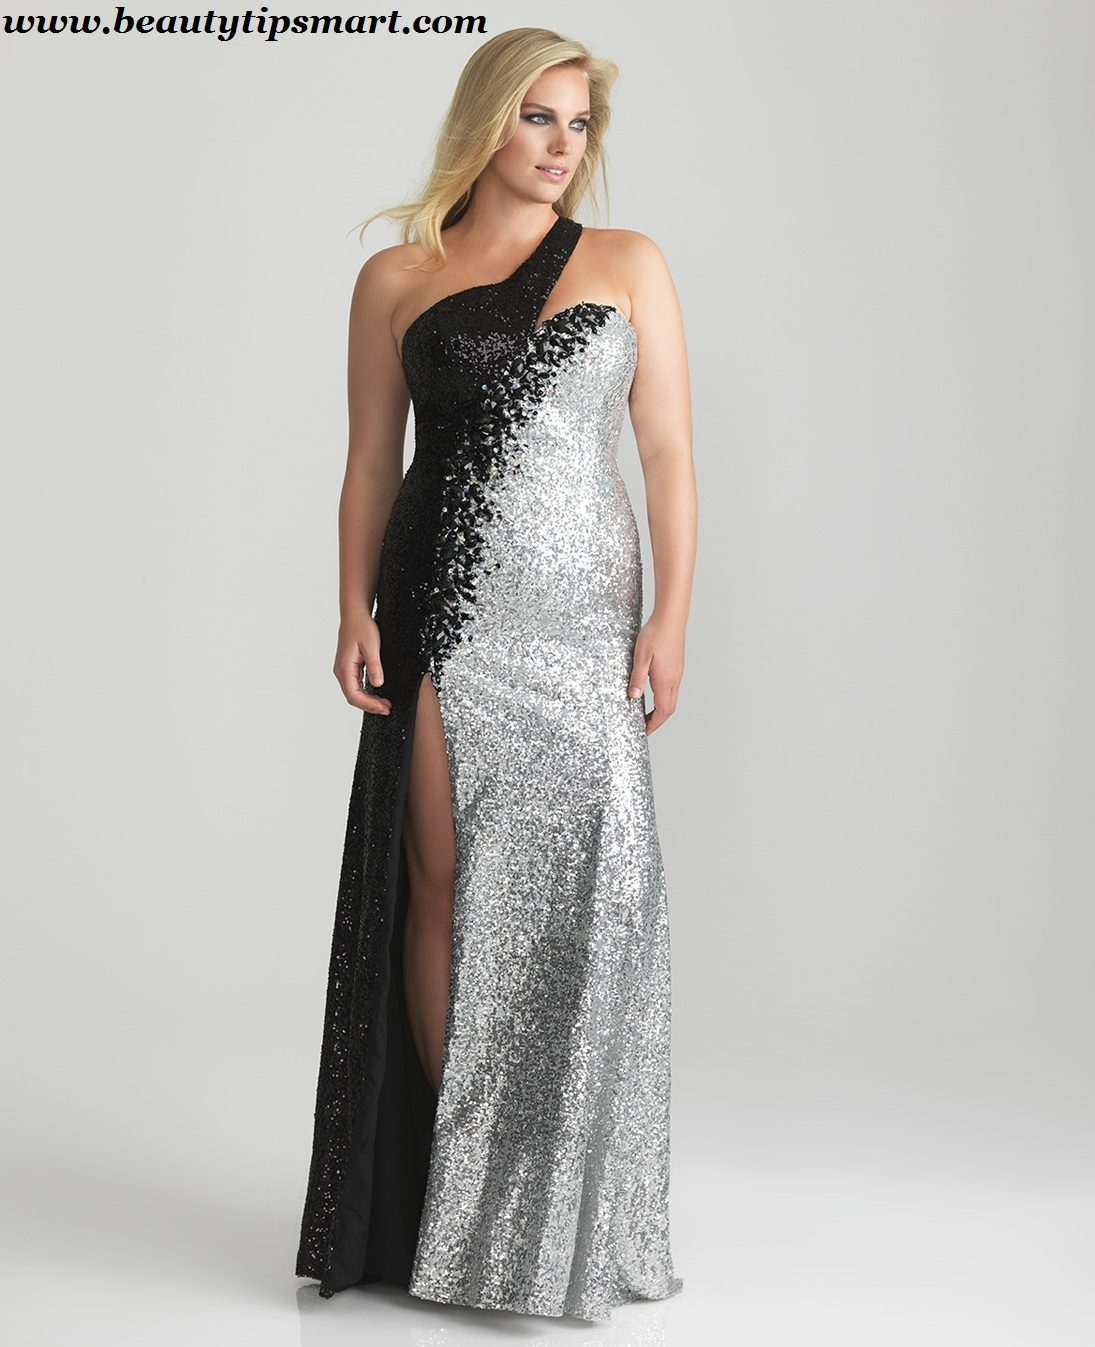 new-years-eve-dresses-evening-gowns-collection-2015-for-plus-size-7503559